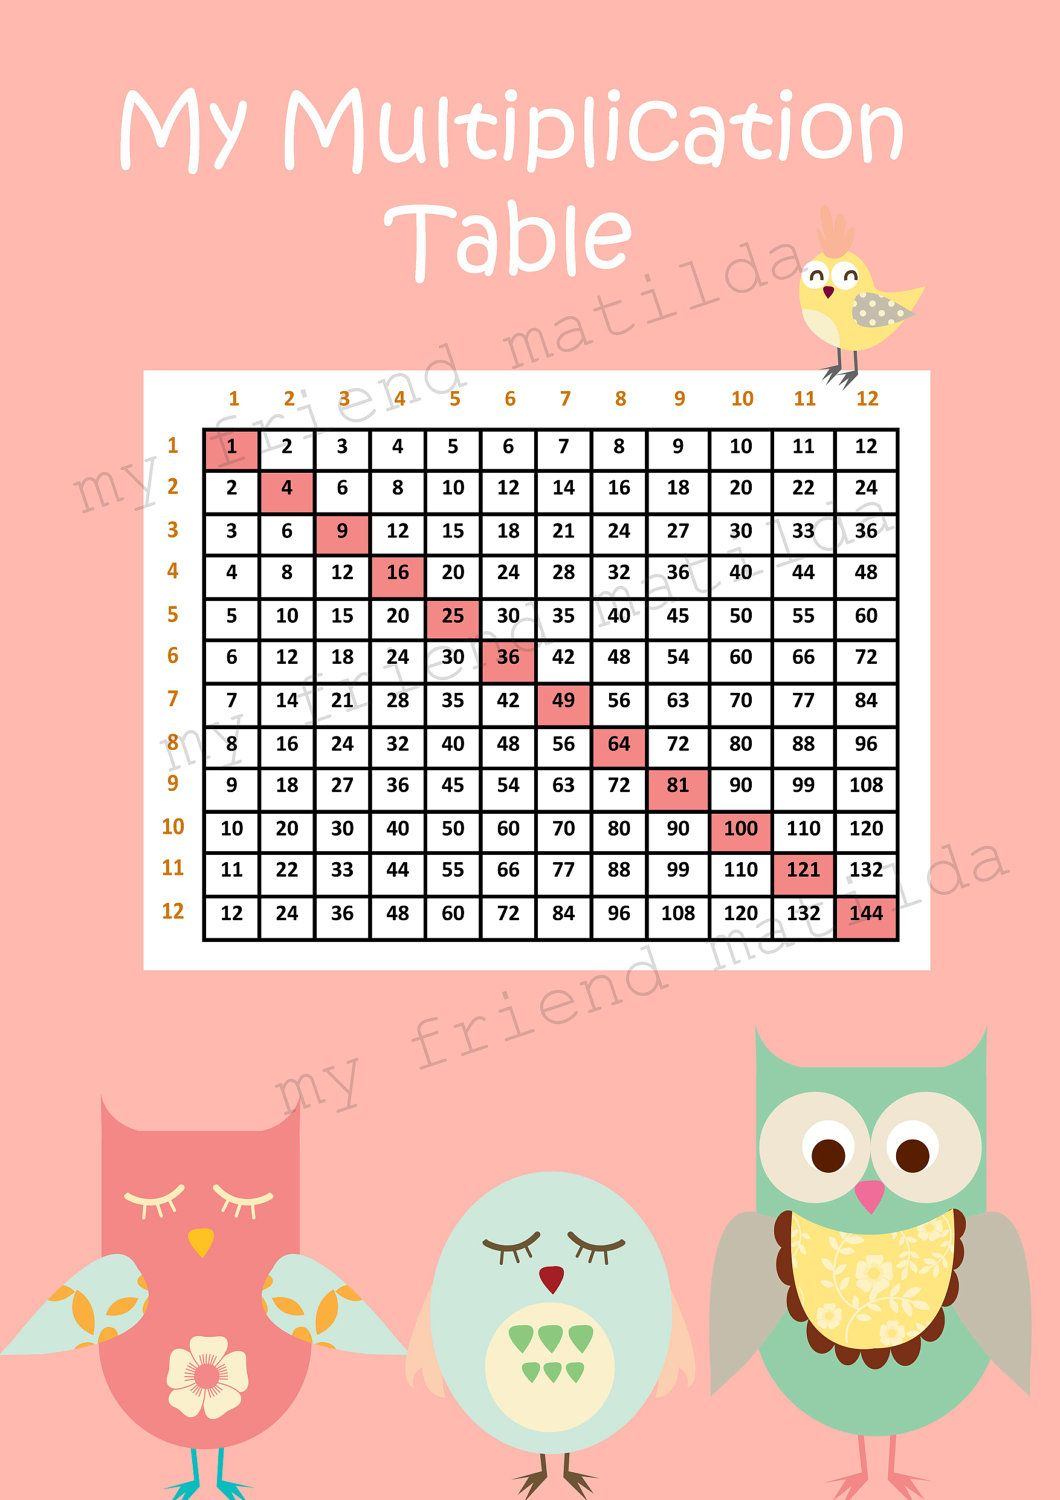 Teaching resource pink owl times tables multiplication chart image of math multiplication chart times tables table maths australia nvjuhfo Image collections